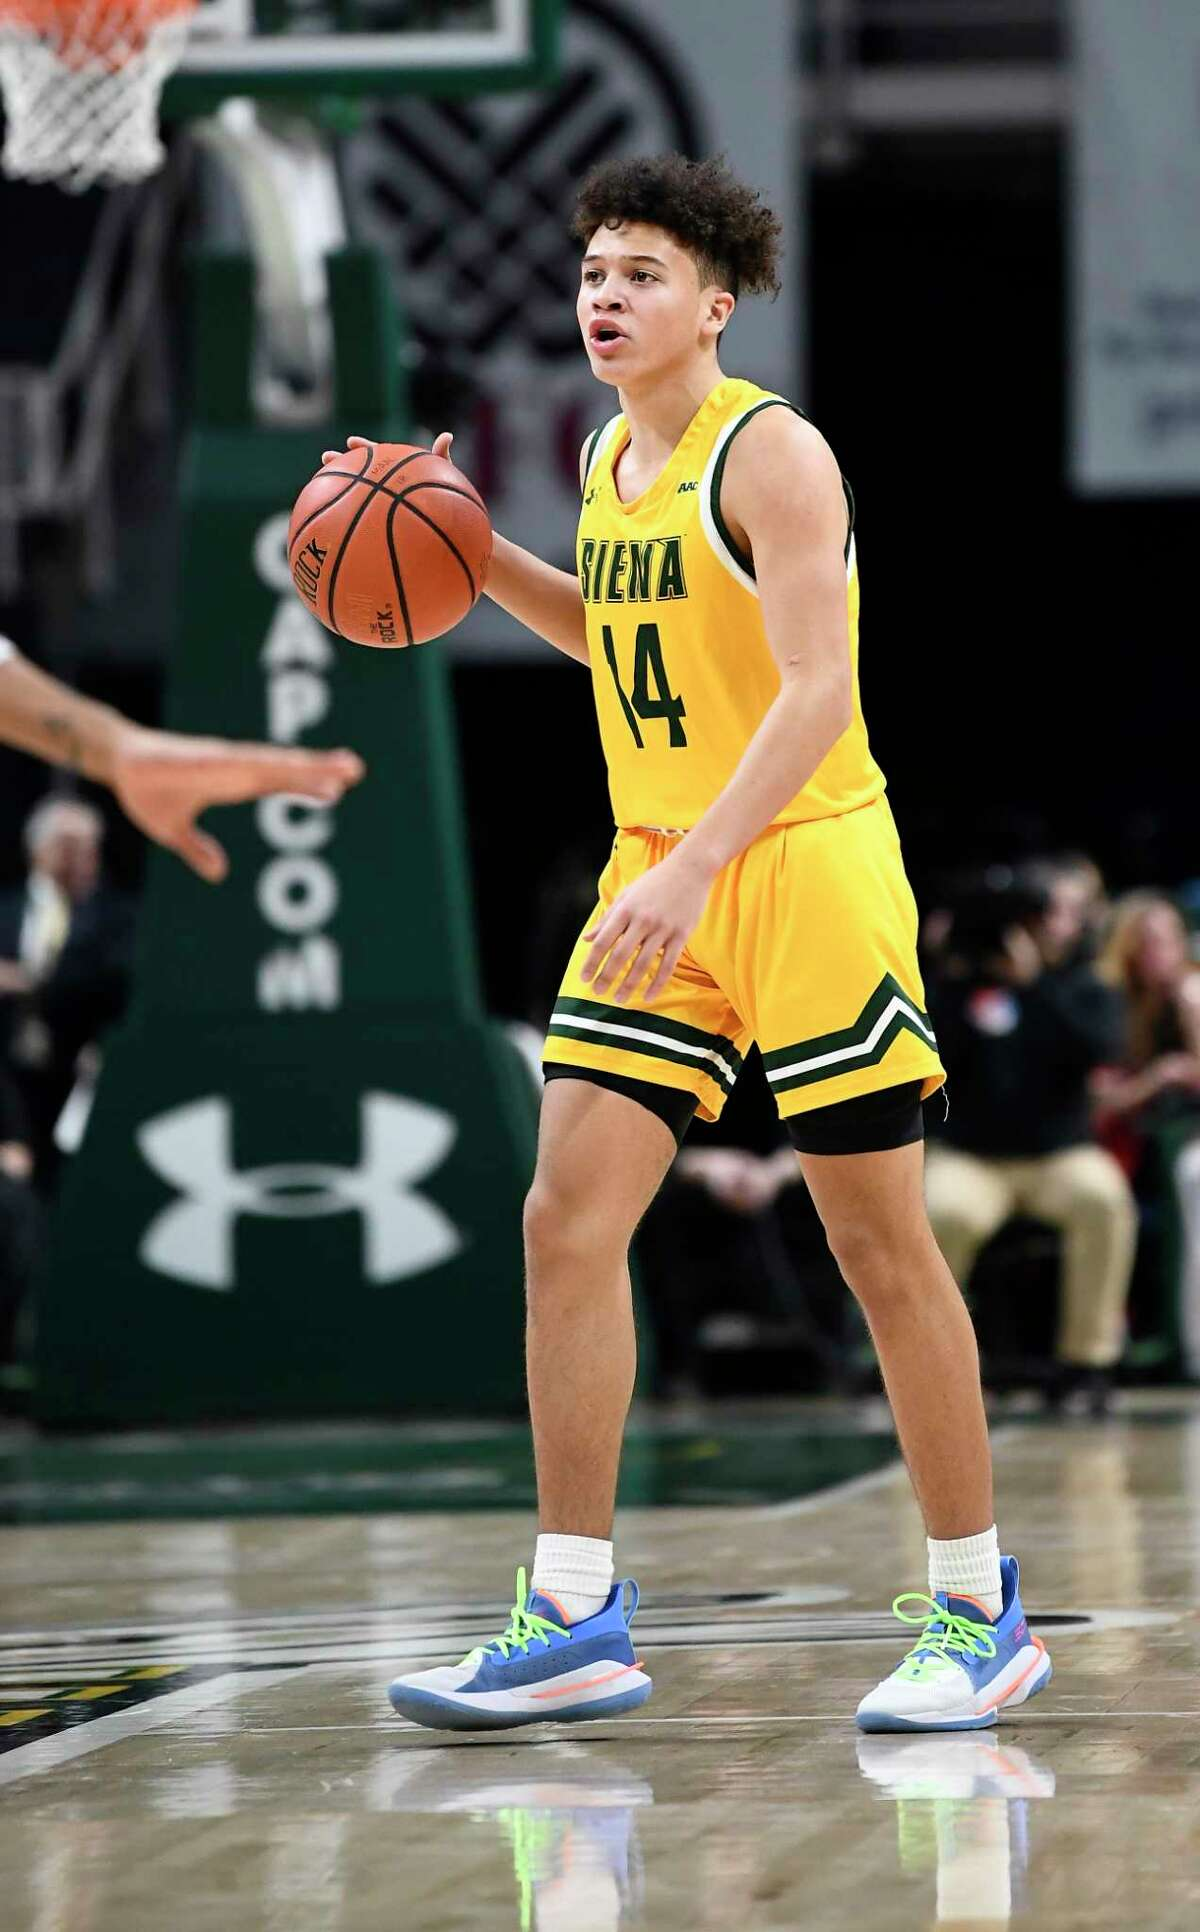 Siena guard Jordan King (14) moves the ball against Rider during the first half of an NCAA basketball game Friday, Feb.14, 2020, in Albany, N.Y. (Hans Pennink / Special to the Times Union) ORG XMIT: 021520_siena_HP124